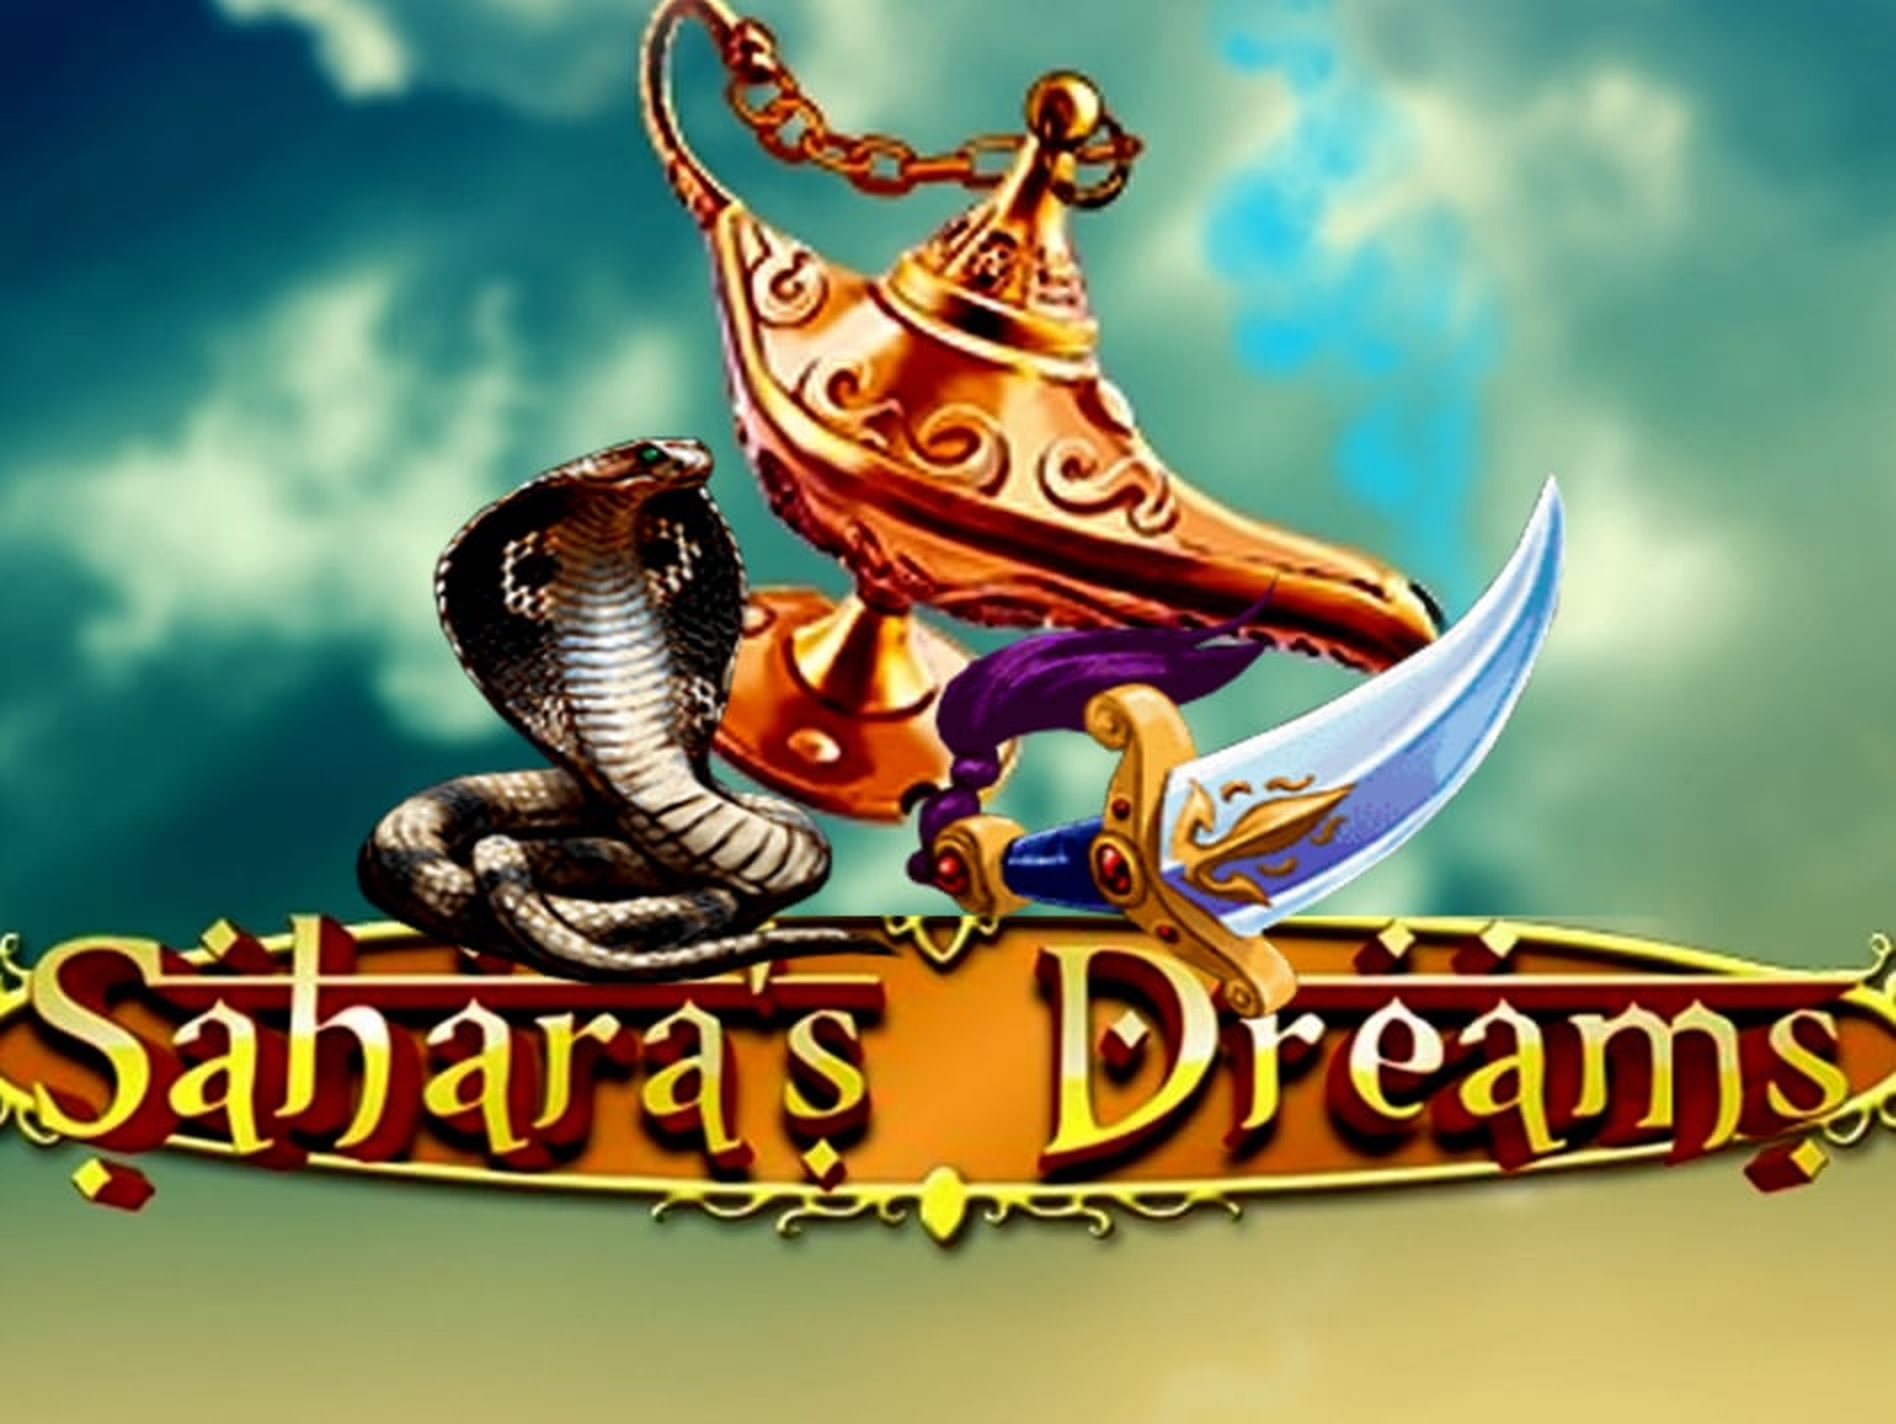 The Sahara's Dreams Online Slot Demo Game by Fugaso